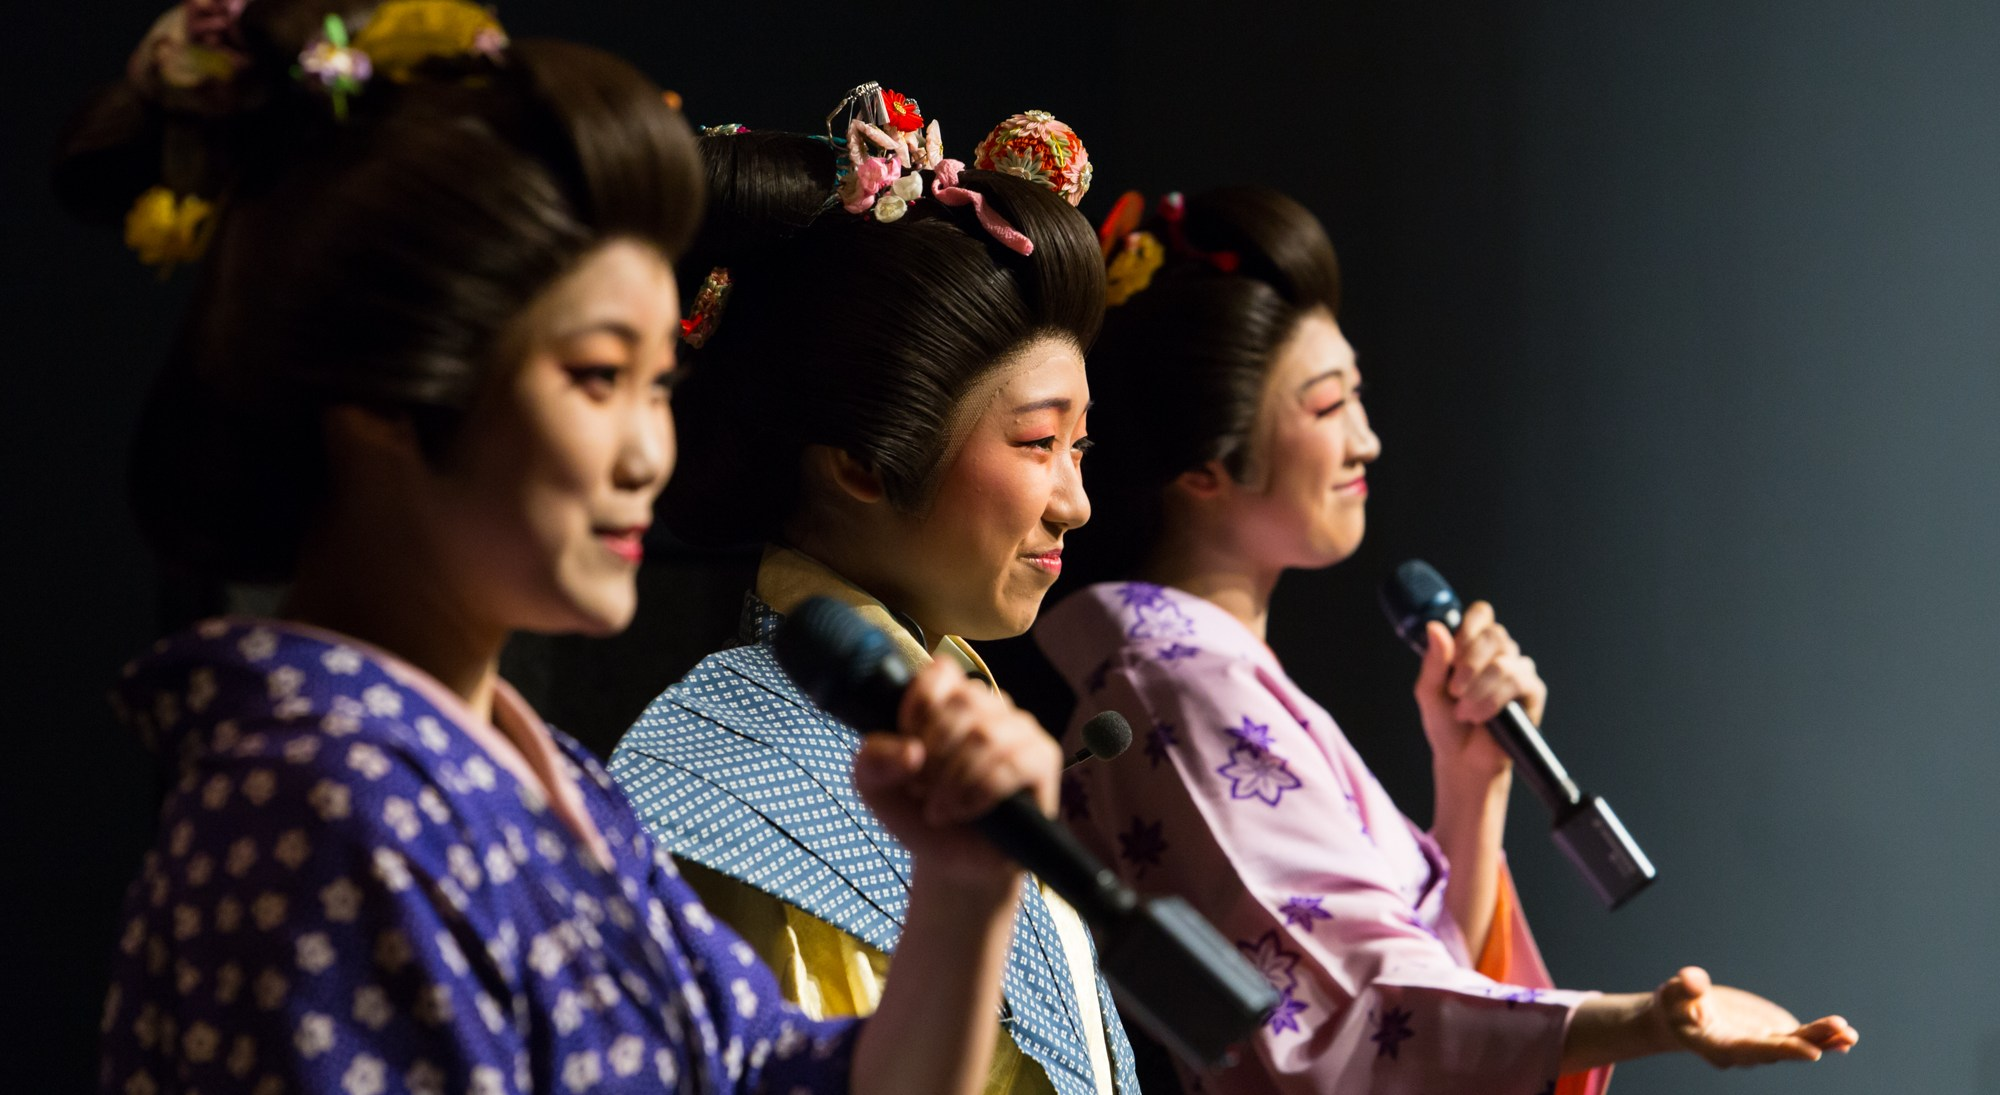 Performers from Utamaro, the musical